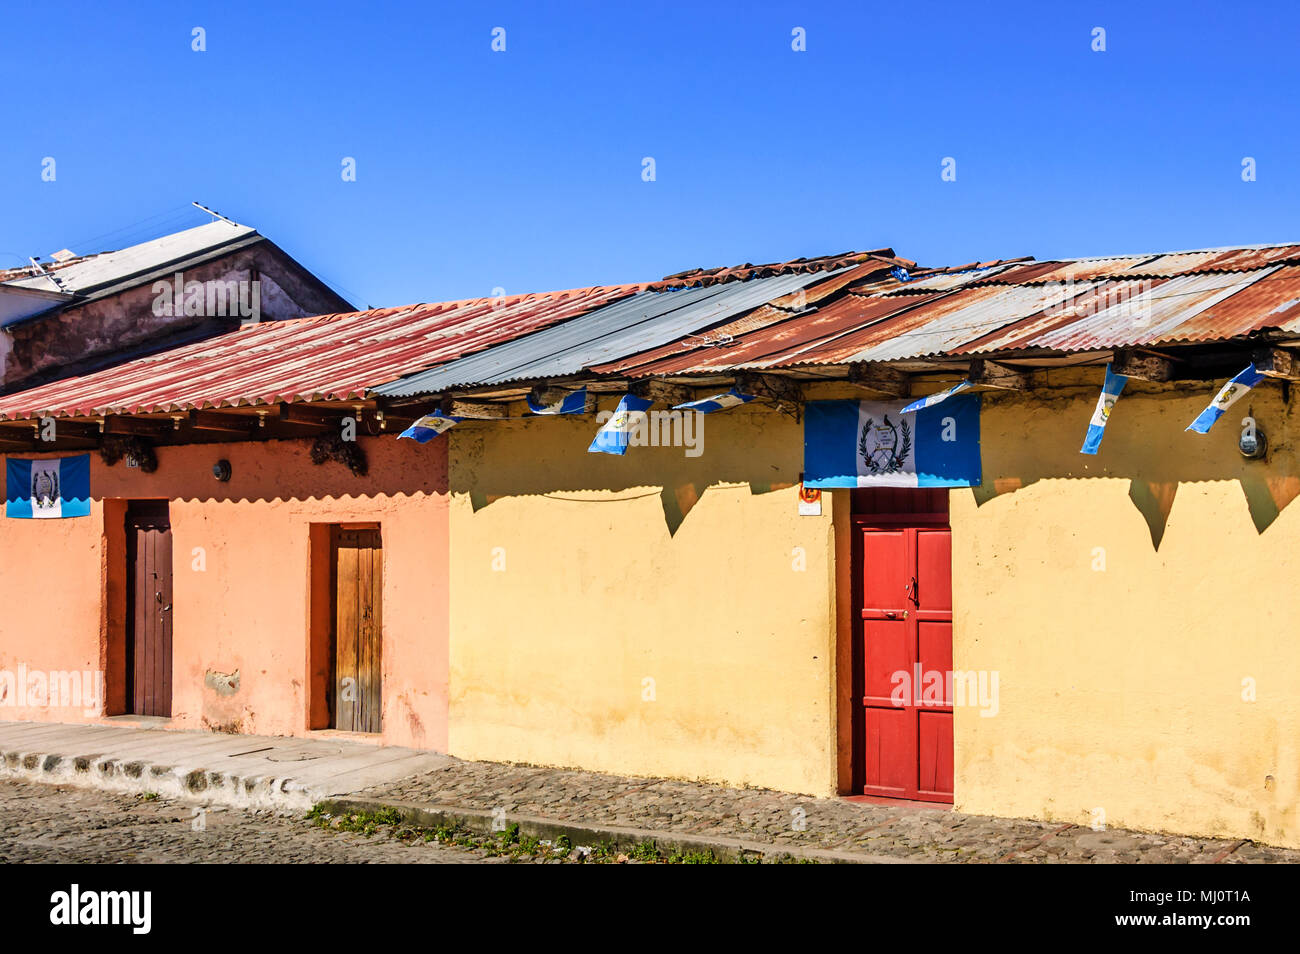 Antigua, Guatemala - October 5, 2014: Old, colorful, painted houses adorned with Guatemalan flags in UNESCO World Heritage Site of Antigua - Stock Image